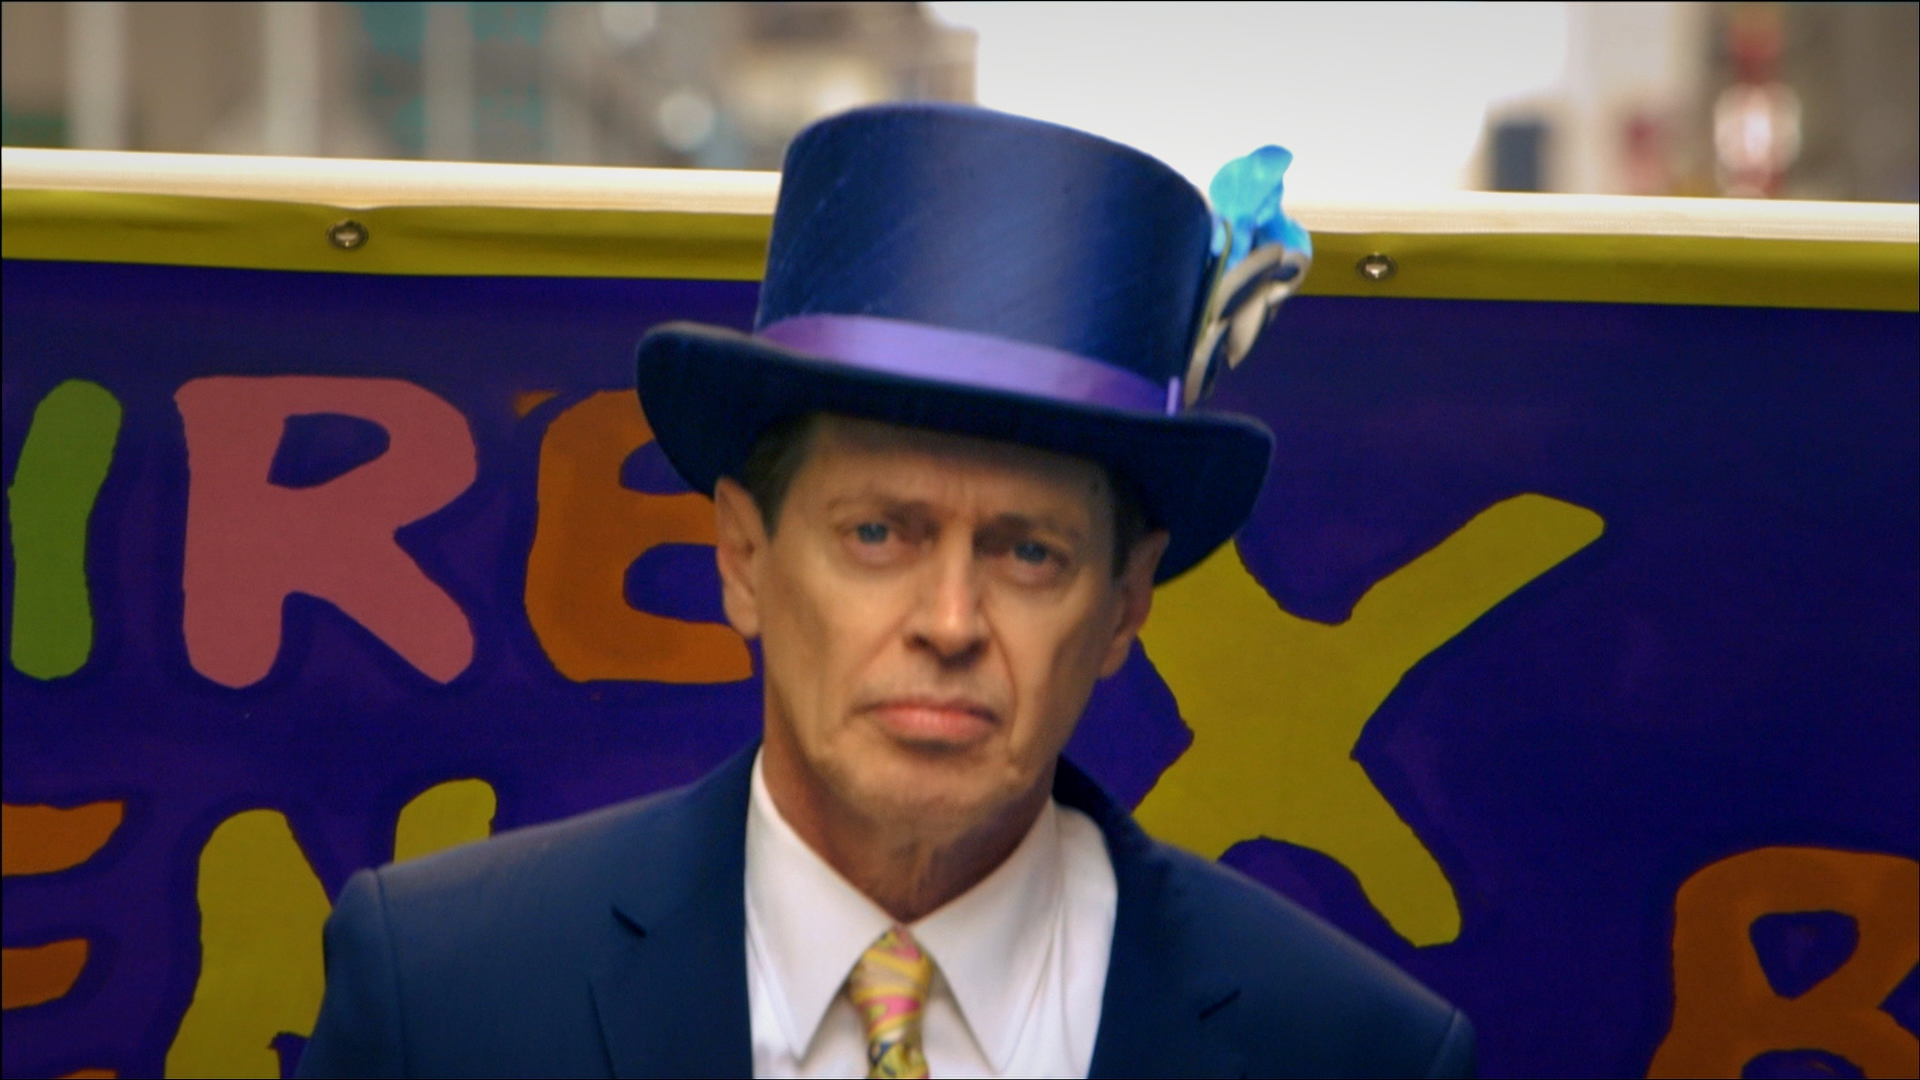 Steve Buscemi marches in the Easter Day Parade.